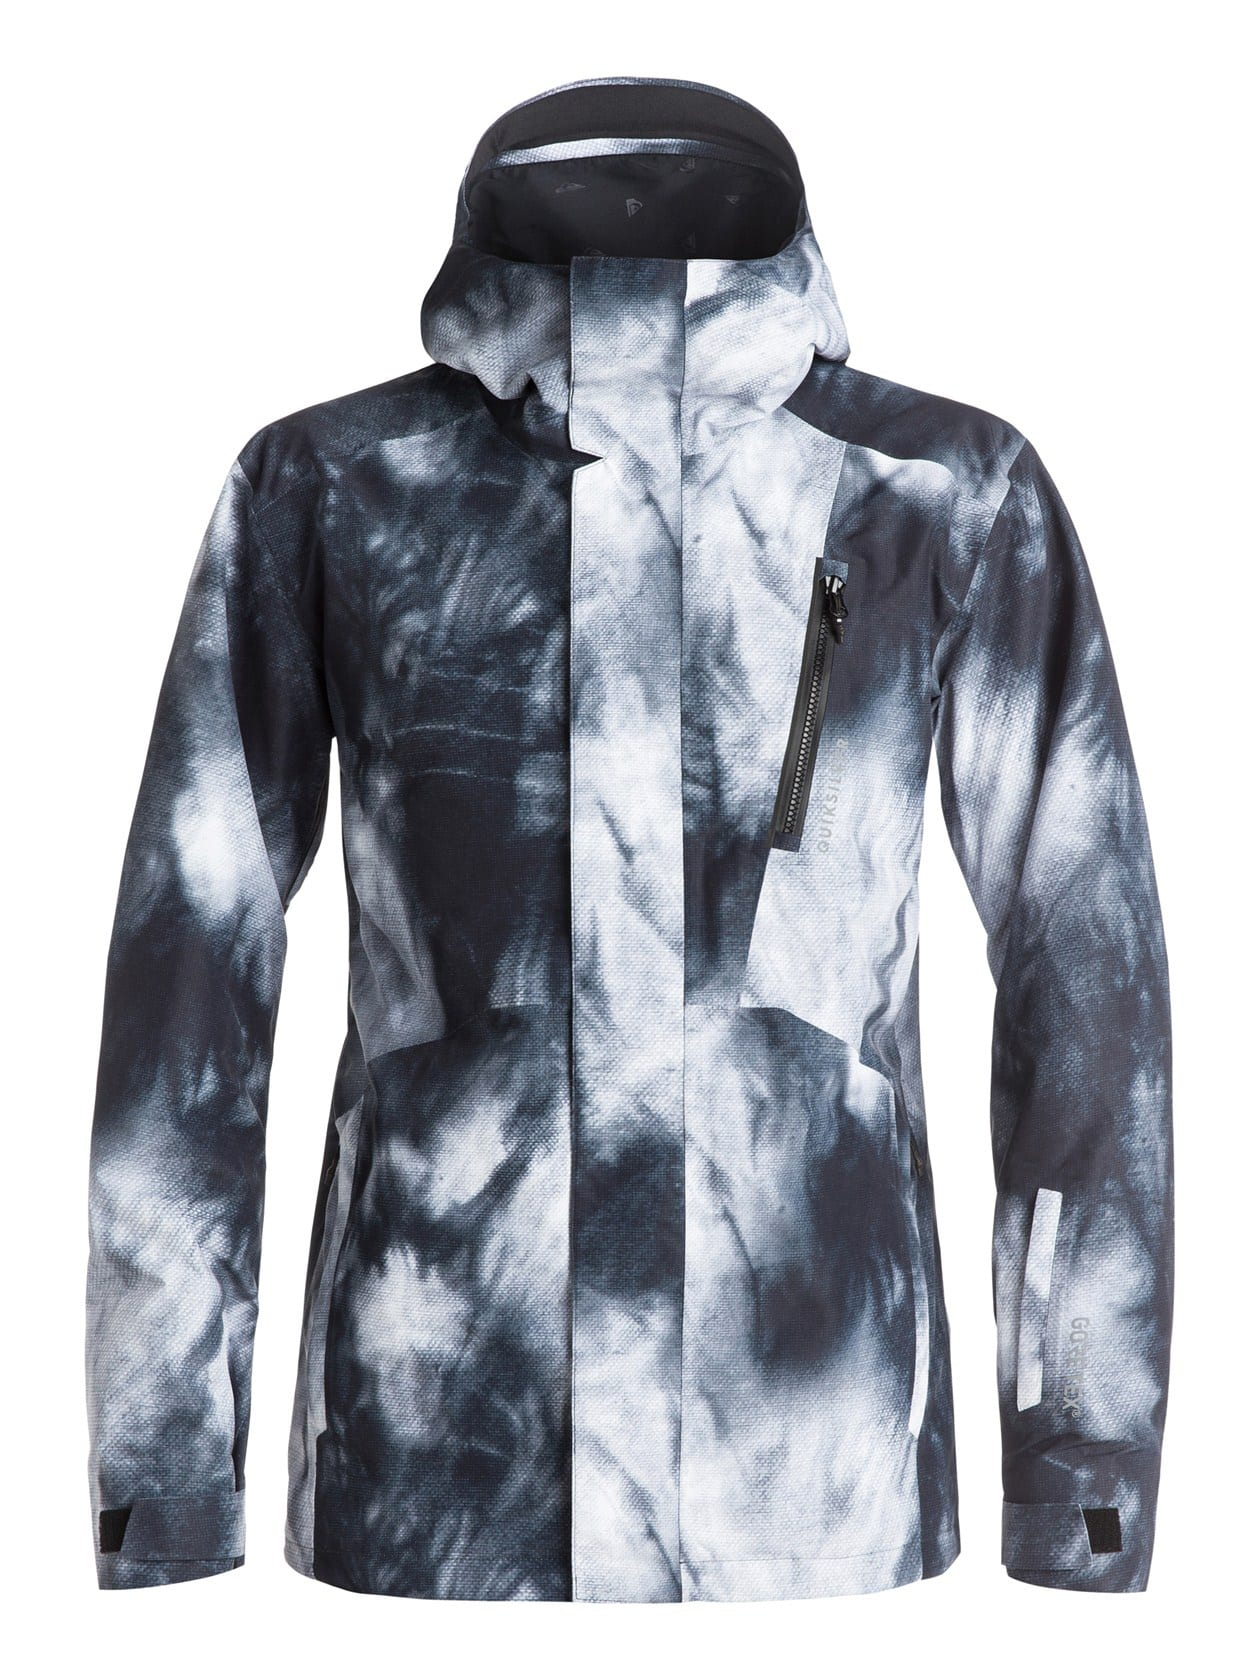 Quiksilver mens jacket - Quiksilver Forever Printed Gore Tex Snowboard Jacket